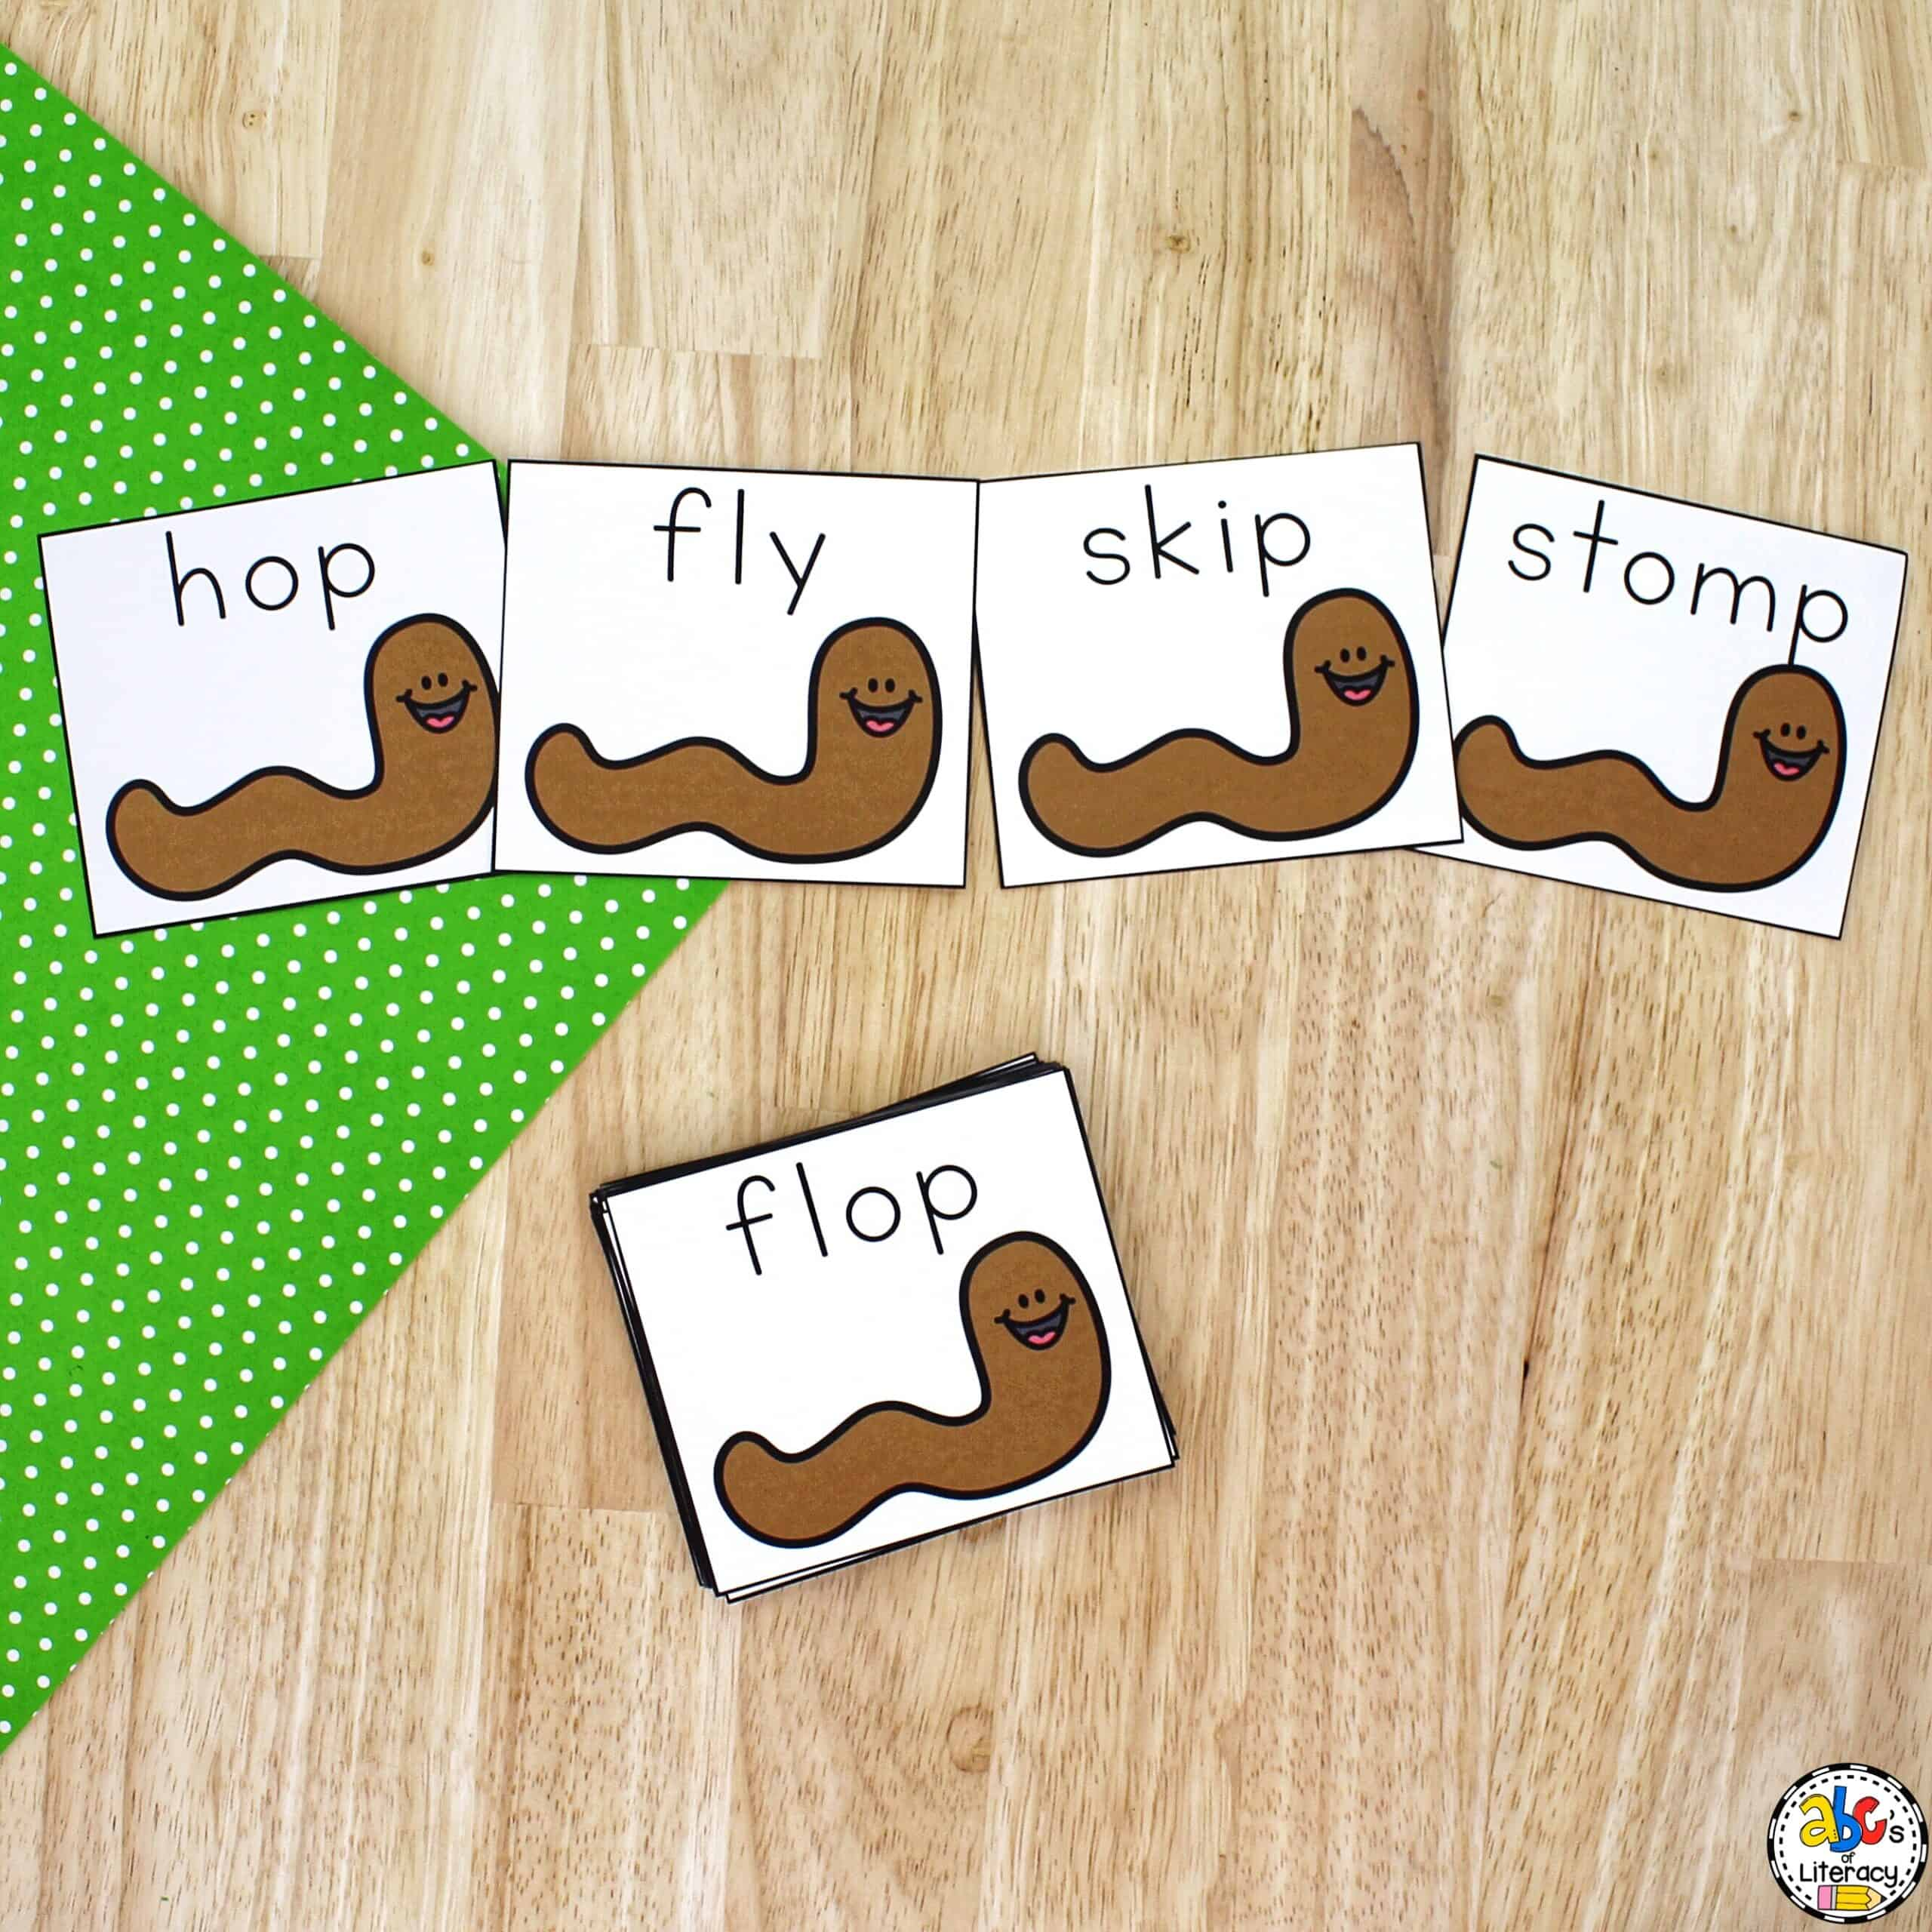 Vocabulary Activity for Kids